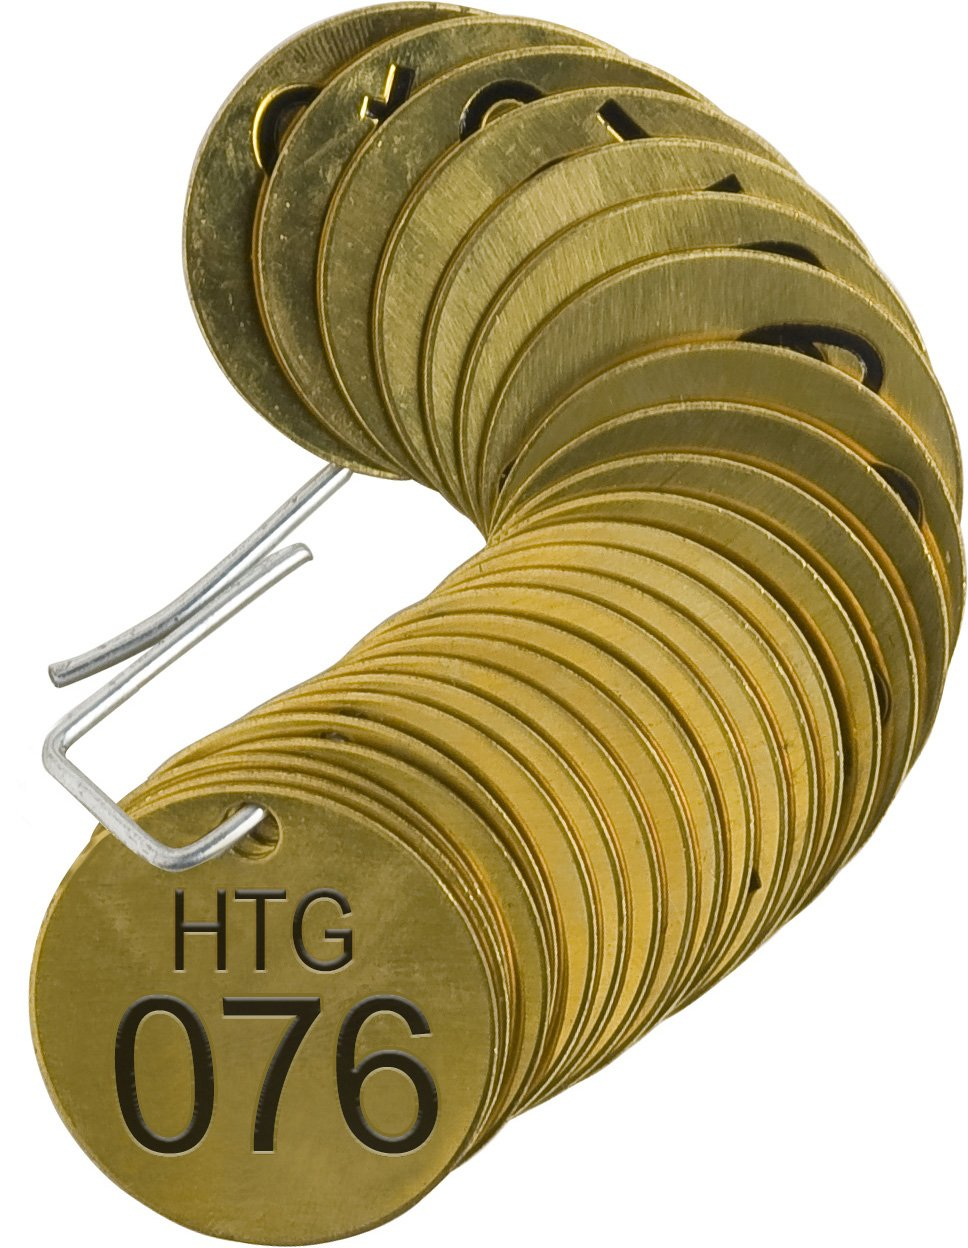 25 per Package LegendHTG LegendHTG Numbers 076-100 25 per Package Brady 232711 1//2 Diameter Stamped Brass Valve Tags